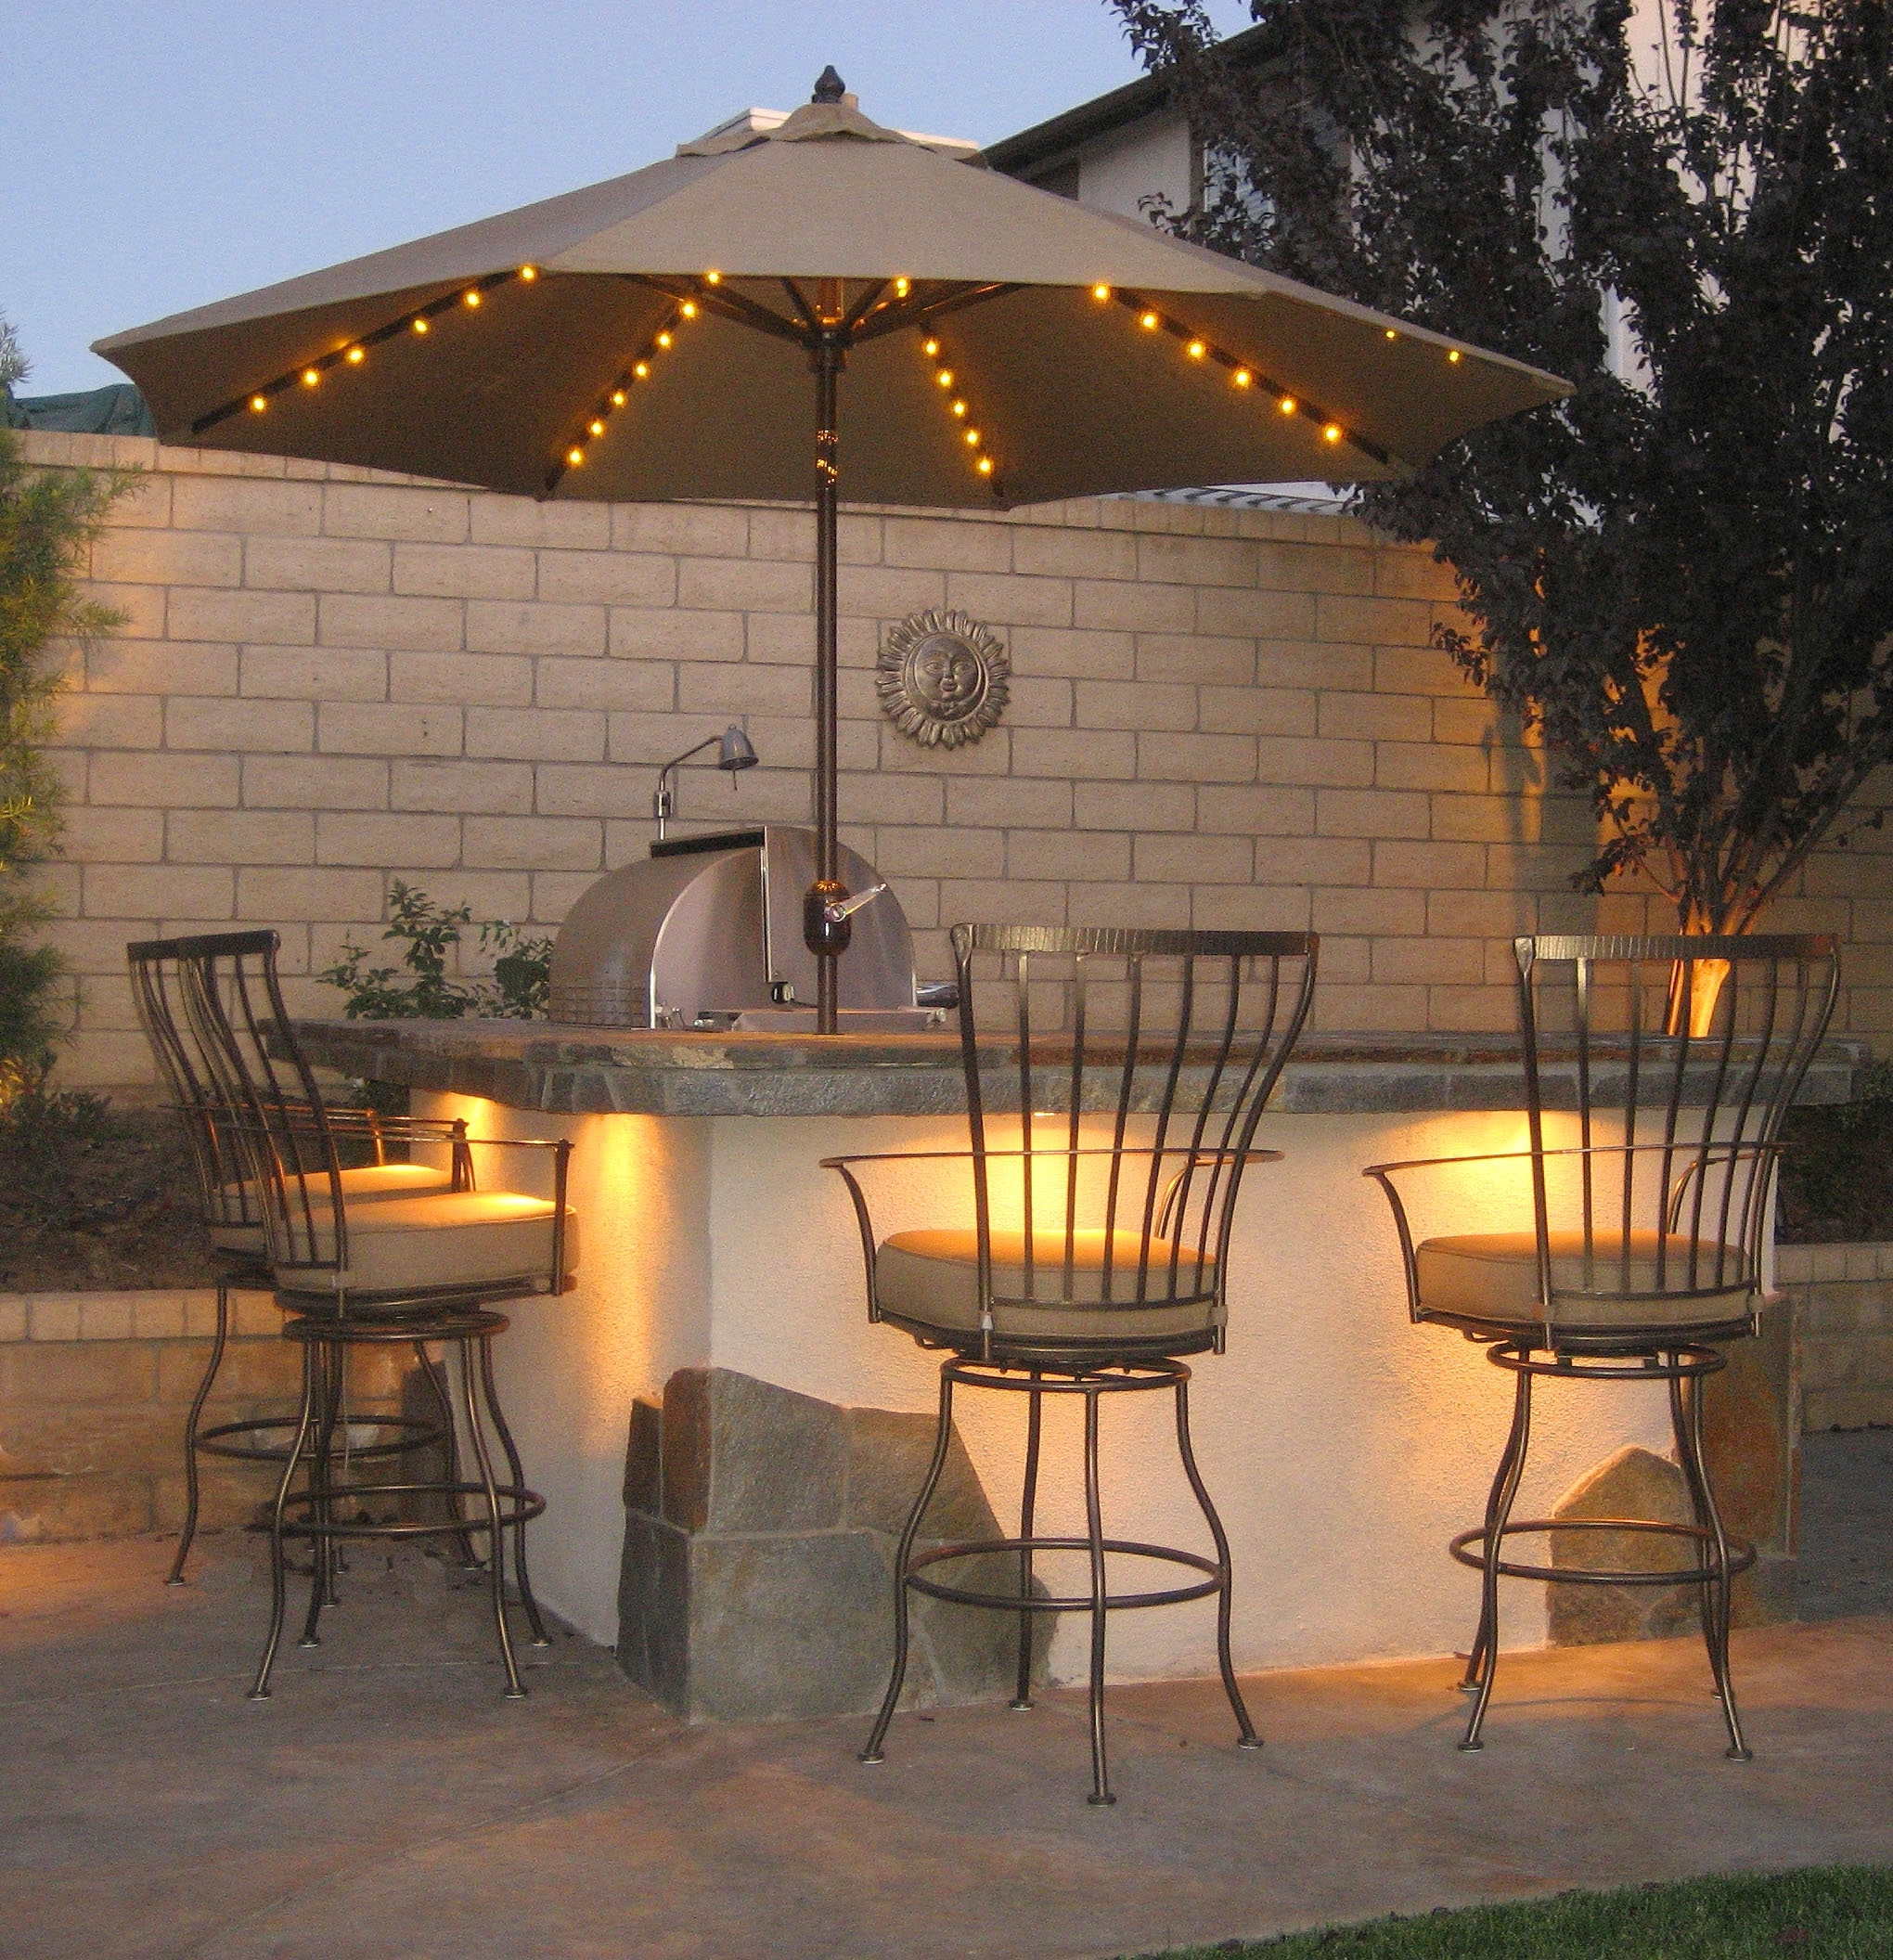 Patio Umbrella Lighting — Mistikcamping Home Design : Different In Current Patio Umbrellas With Led Lights (View 6 of 20)